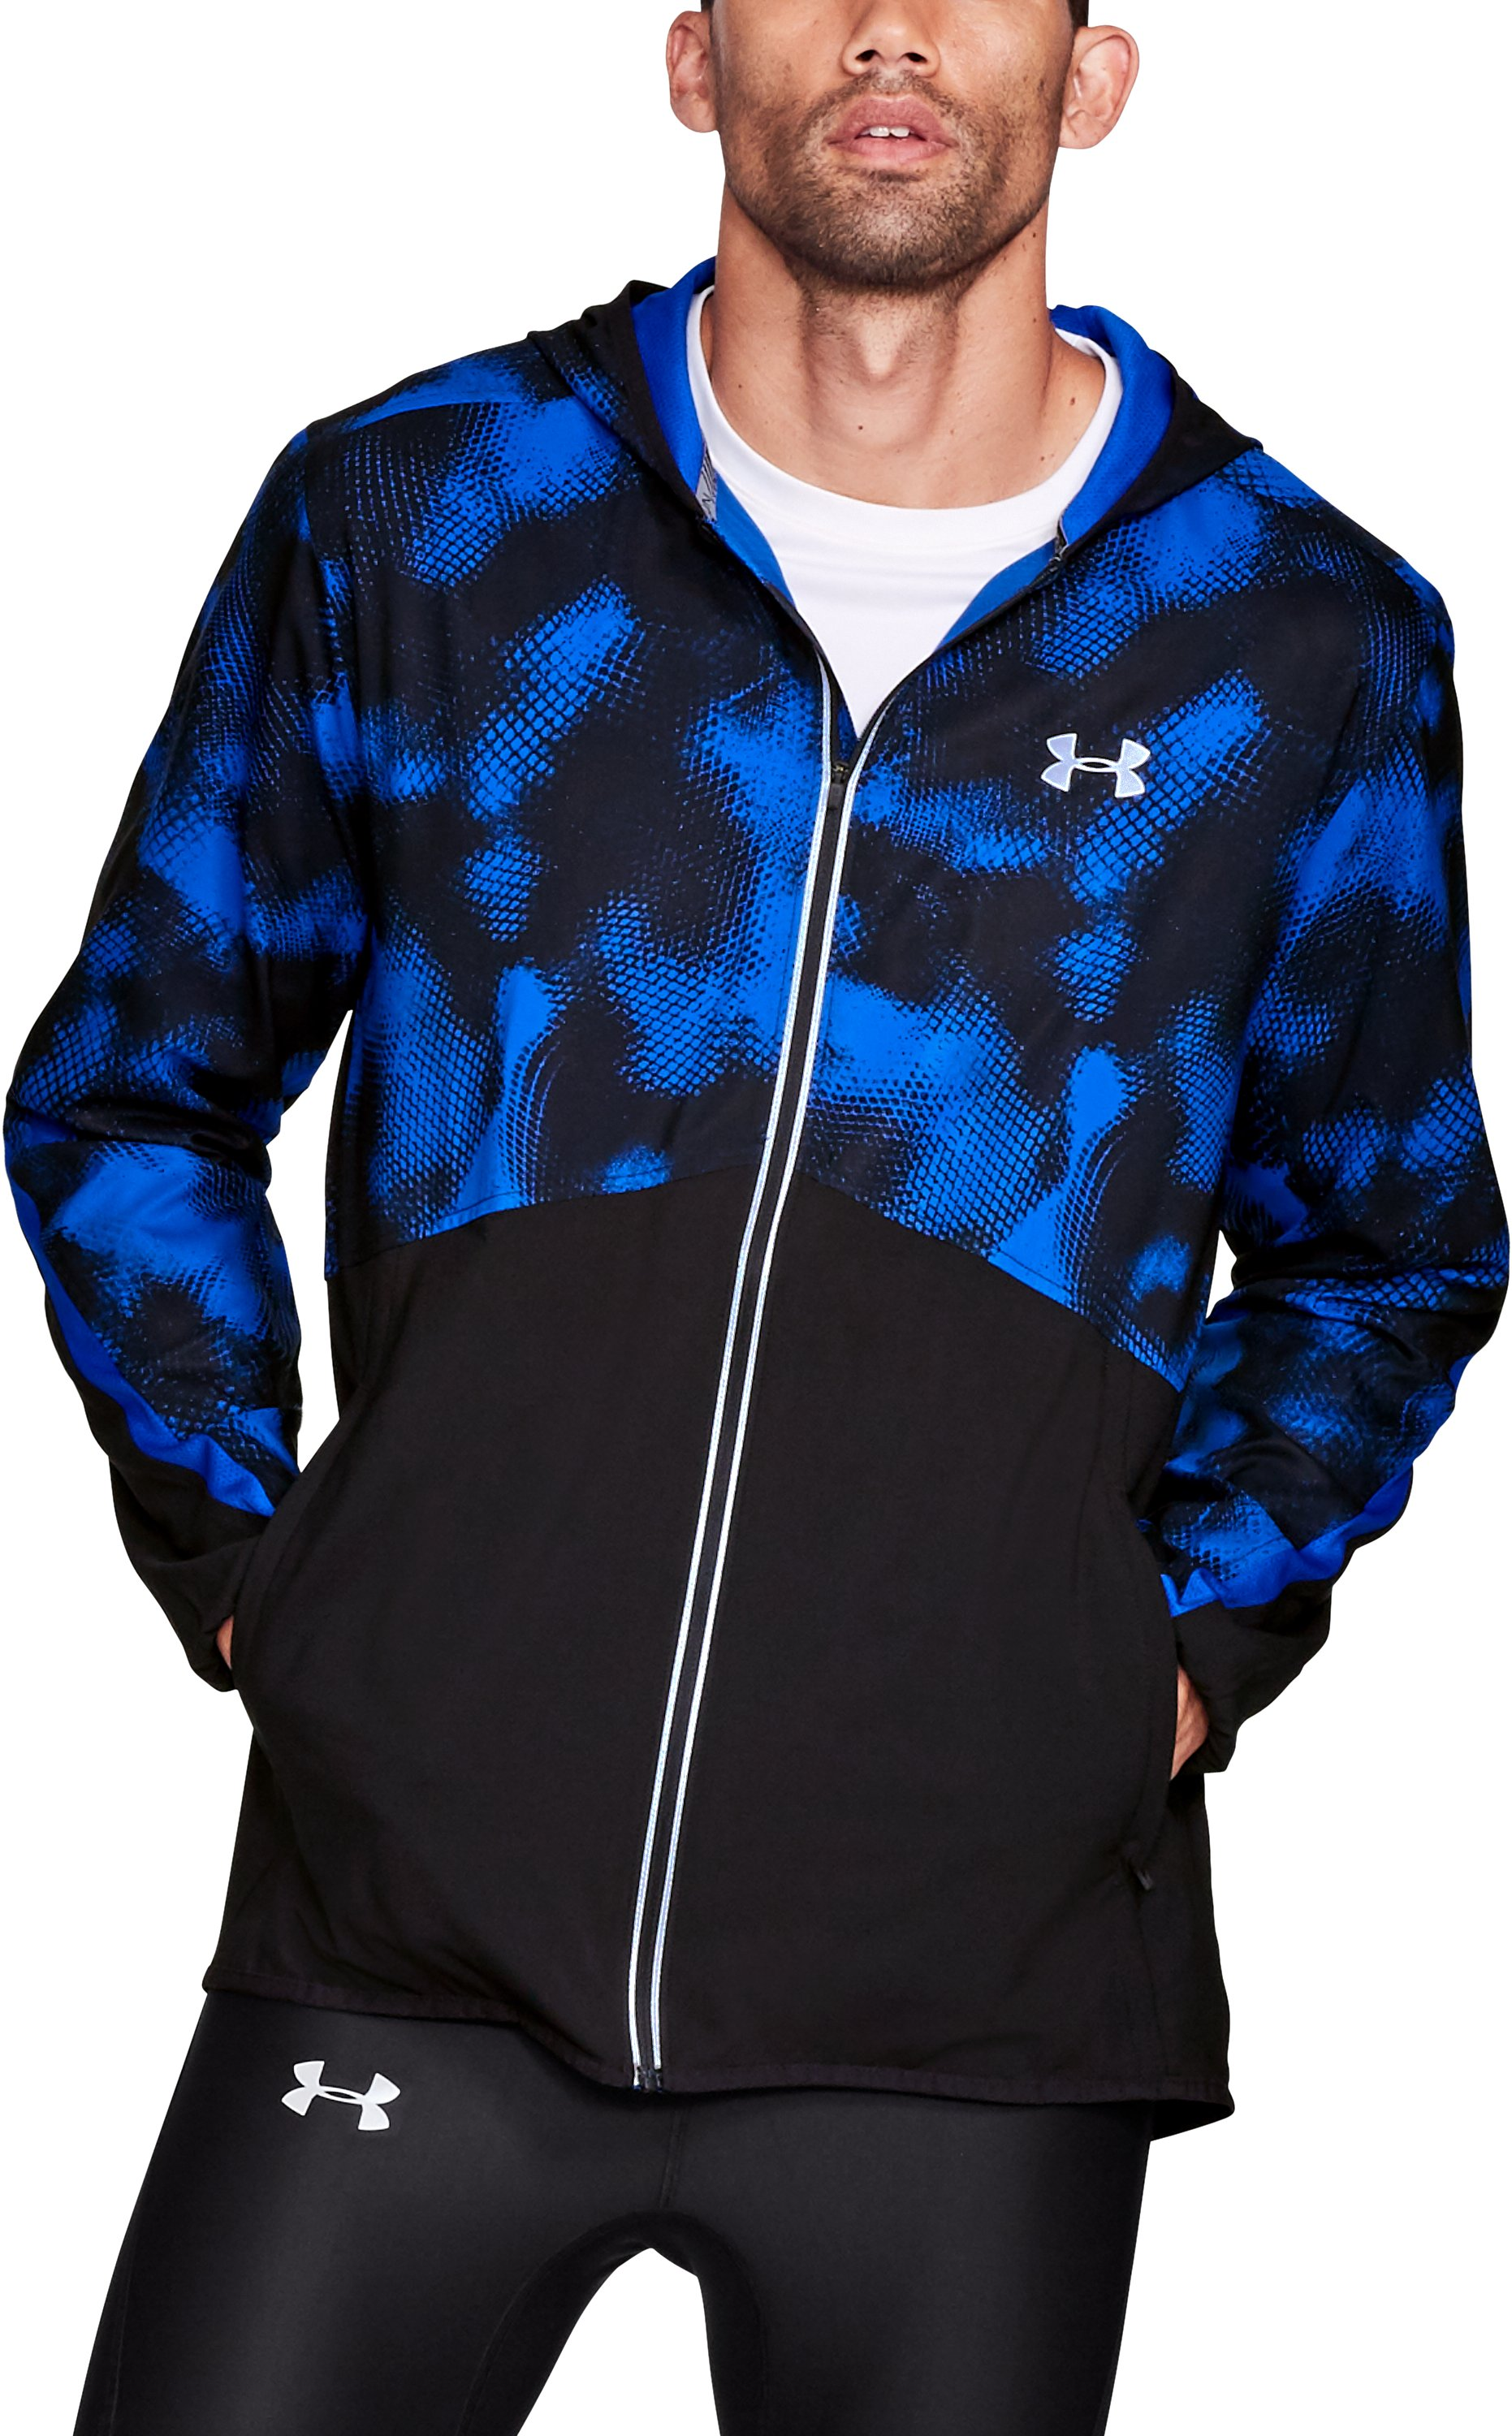 cold weather running jackets Men's UA Run True Printed Jacket Reflective logos for greater <strong>visibility</strong> on <strong>low-light runs</strong>